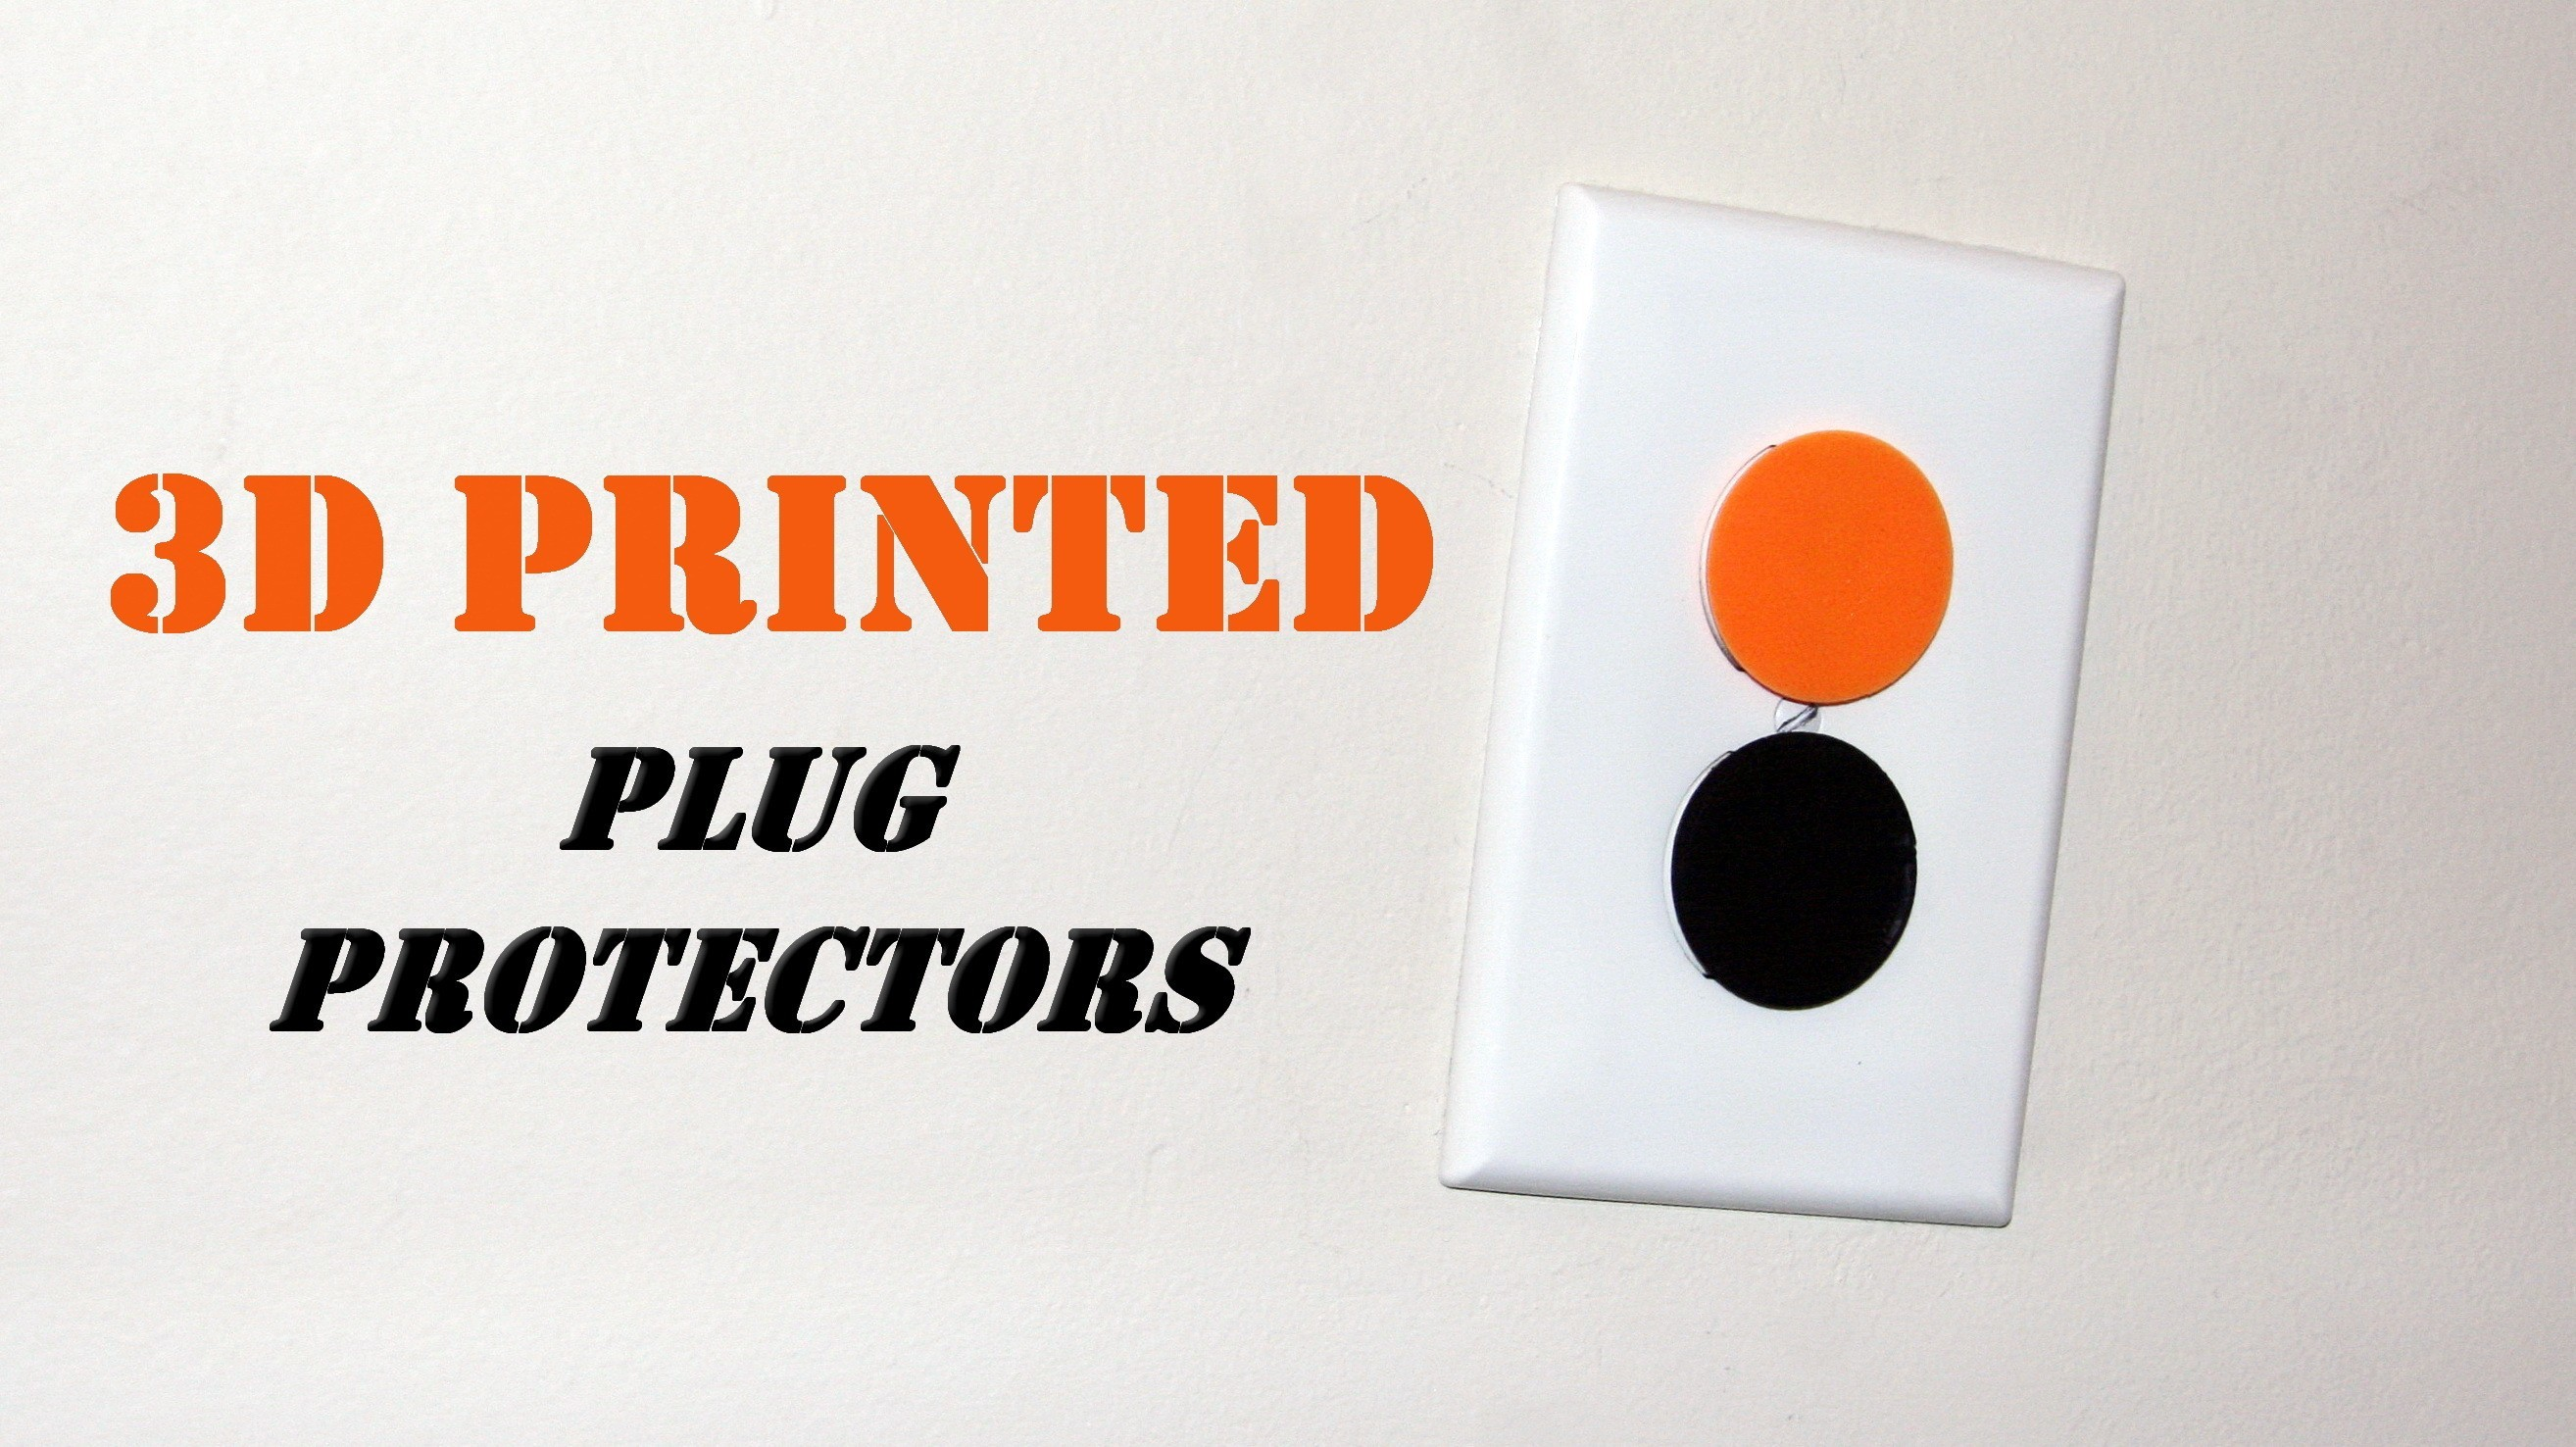 IMG_9790.JPG Download free STL file Plug Protectors! LIFE HACK • 3D printer model, samsuchin